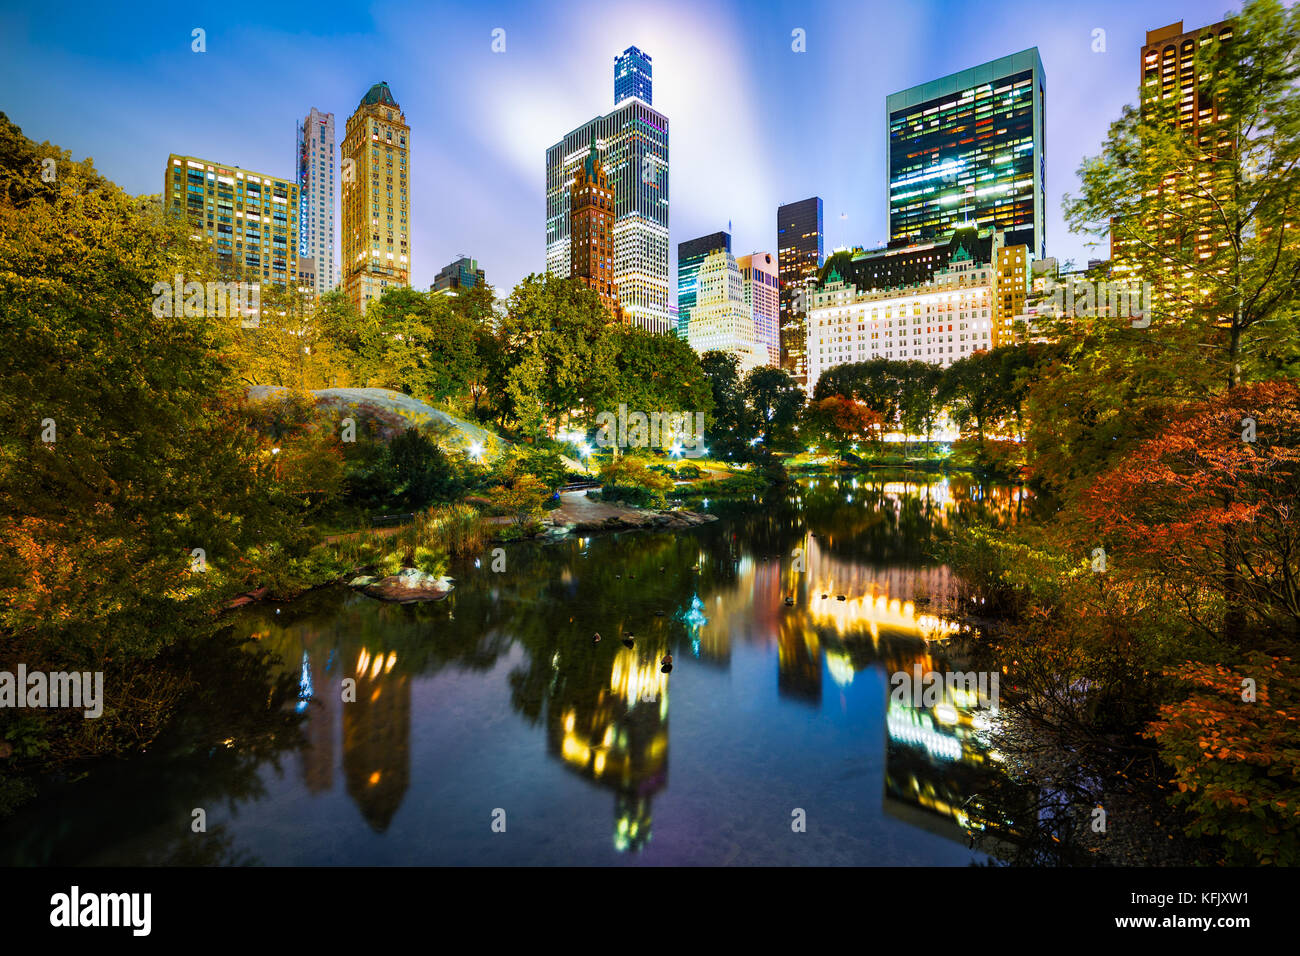 The Pond by night, as viewed from Gapstow Bridge in Central Park, New York City - Stock Image